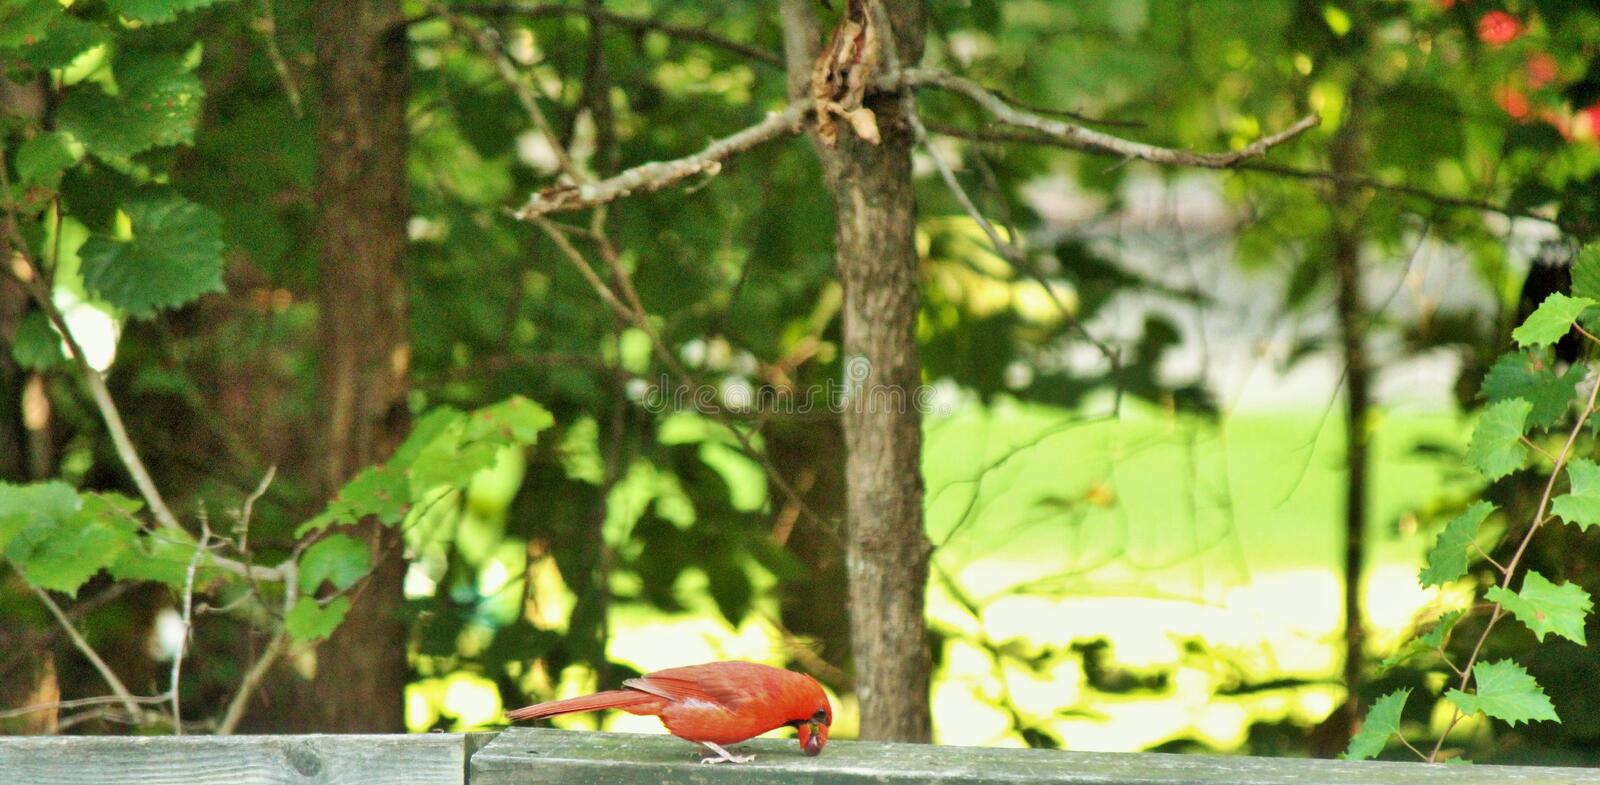 Cardinal having snack with. Cardinal having snack on fence royalty free stock photos